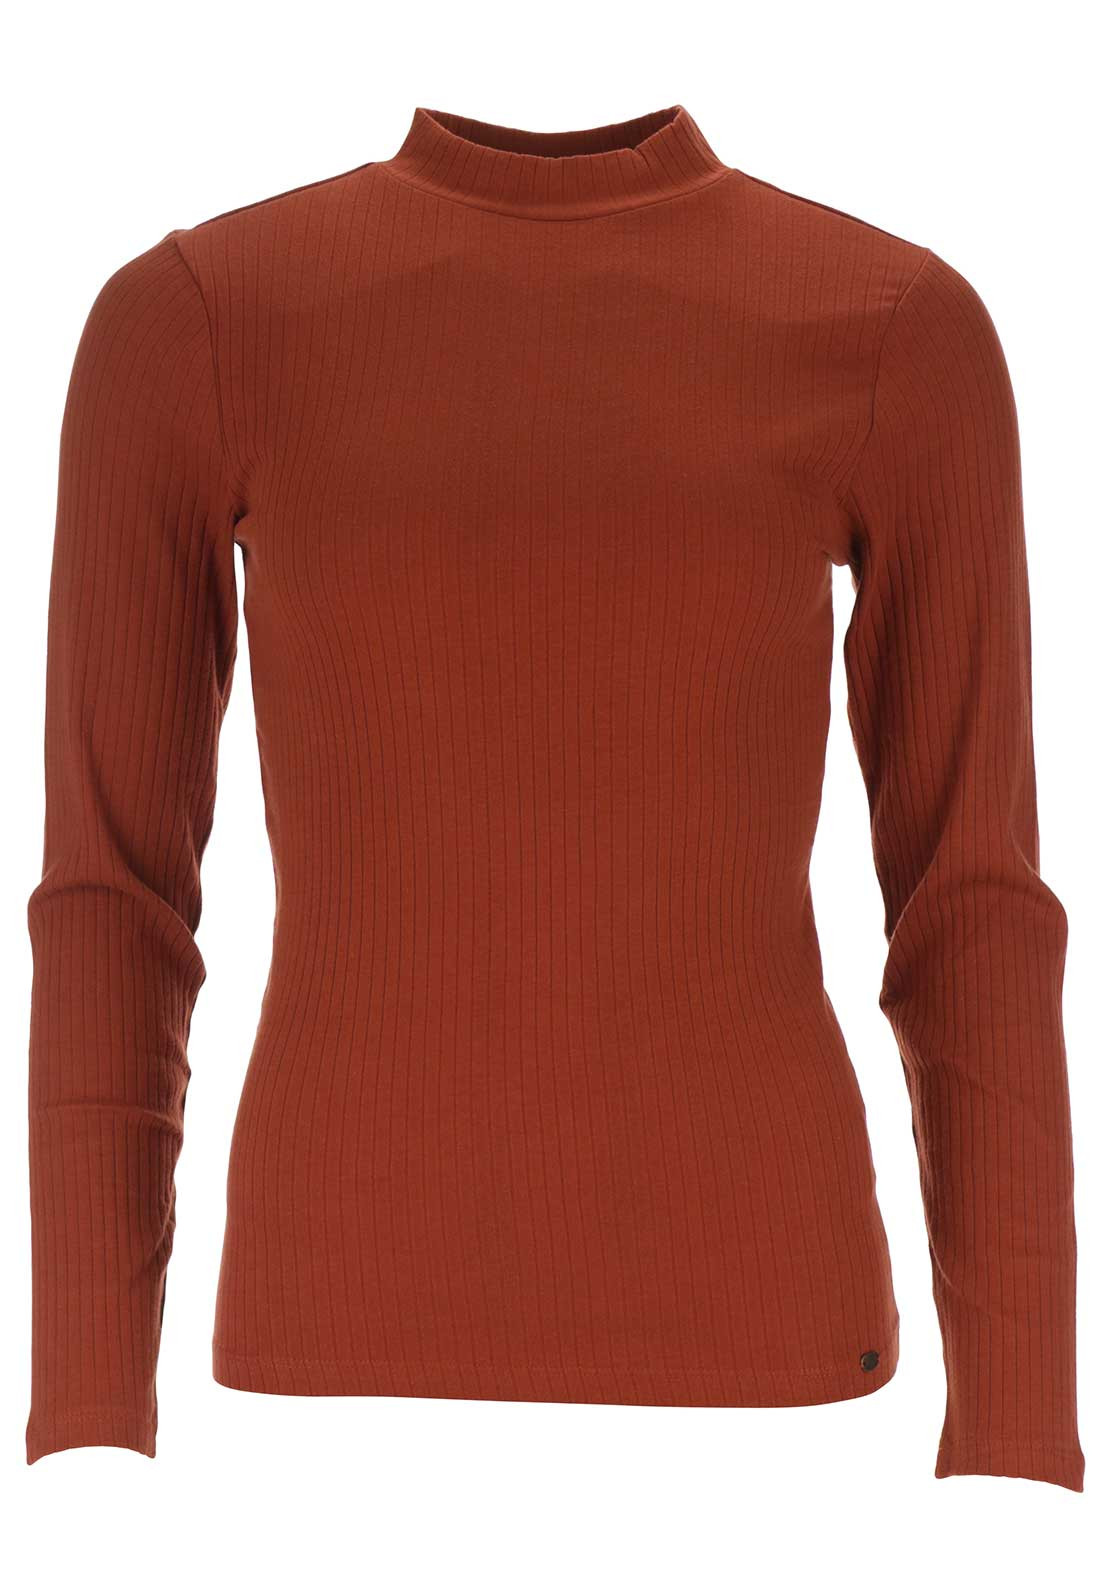 Tiffosi Womens Glenda Top, Orange